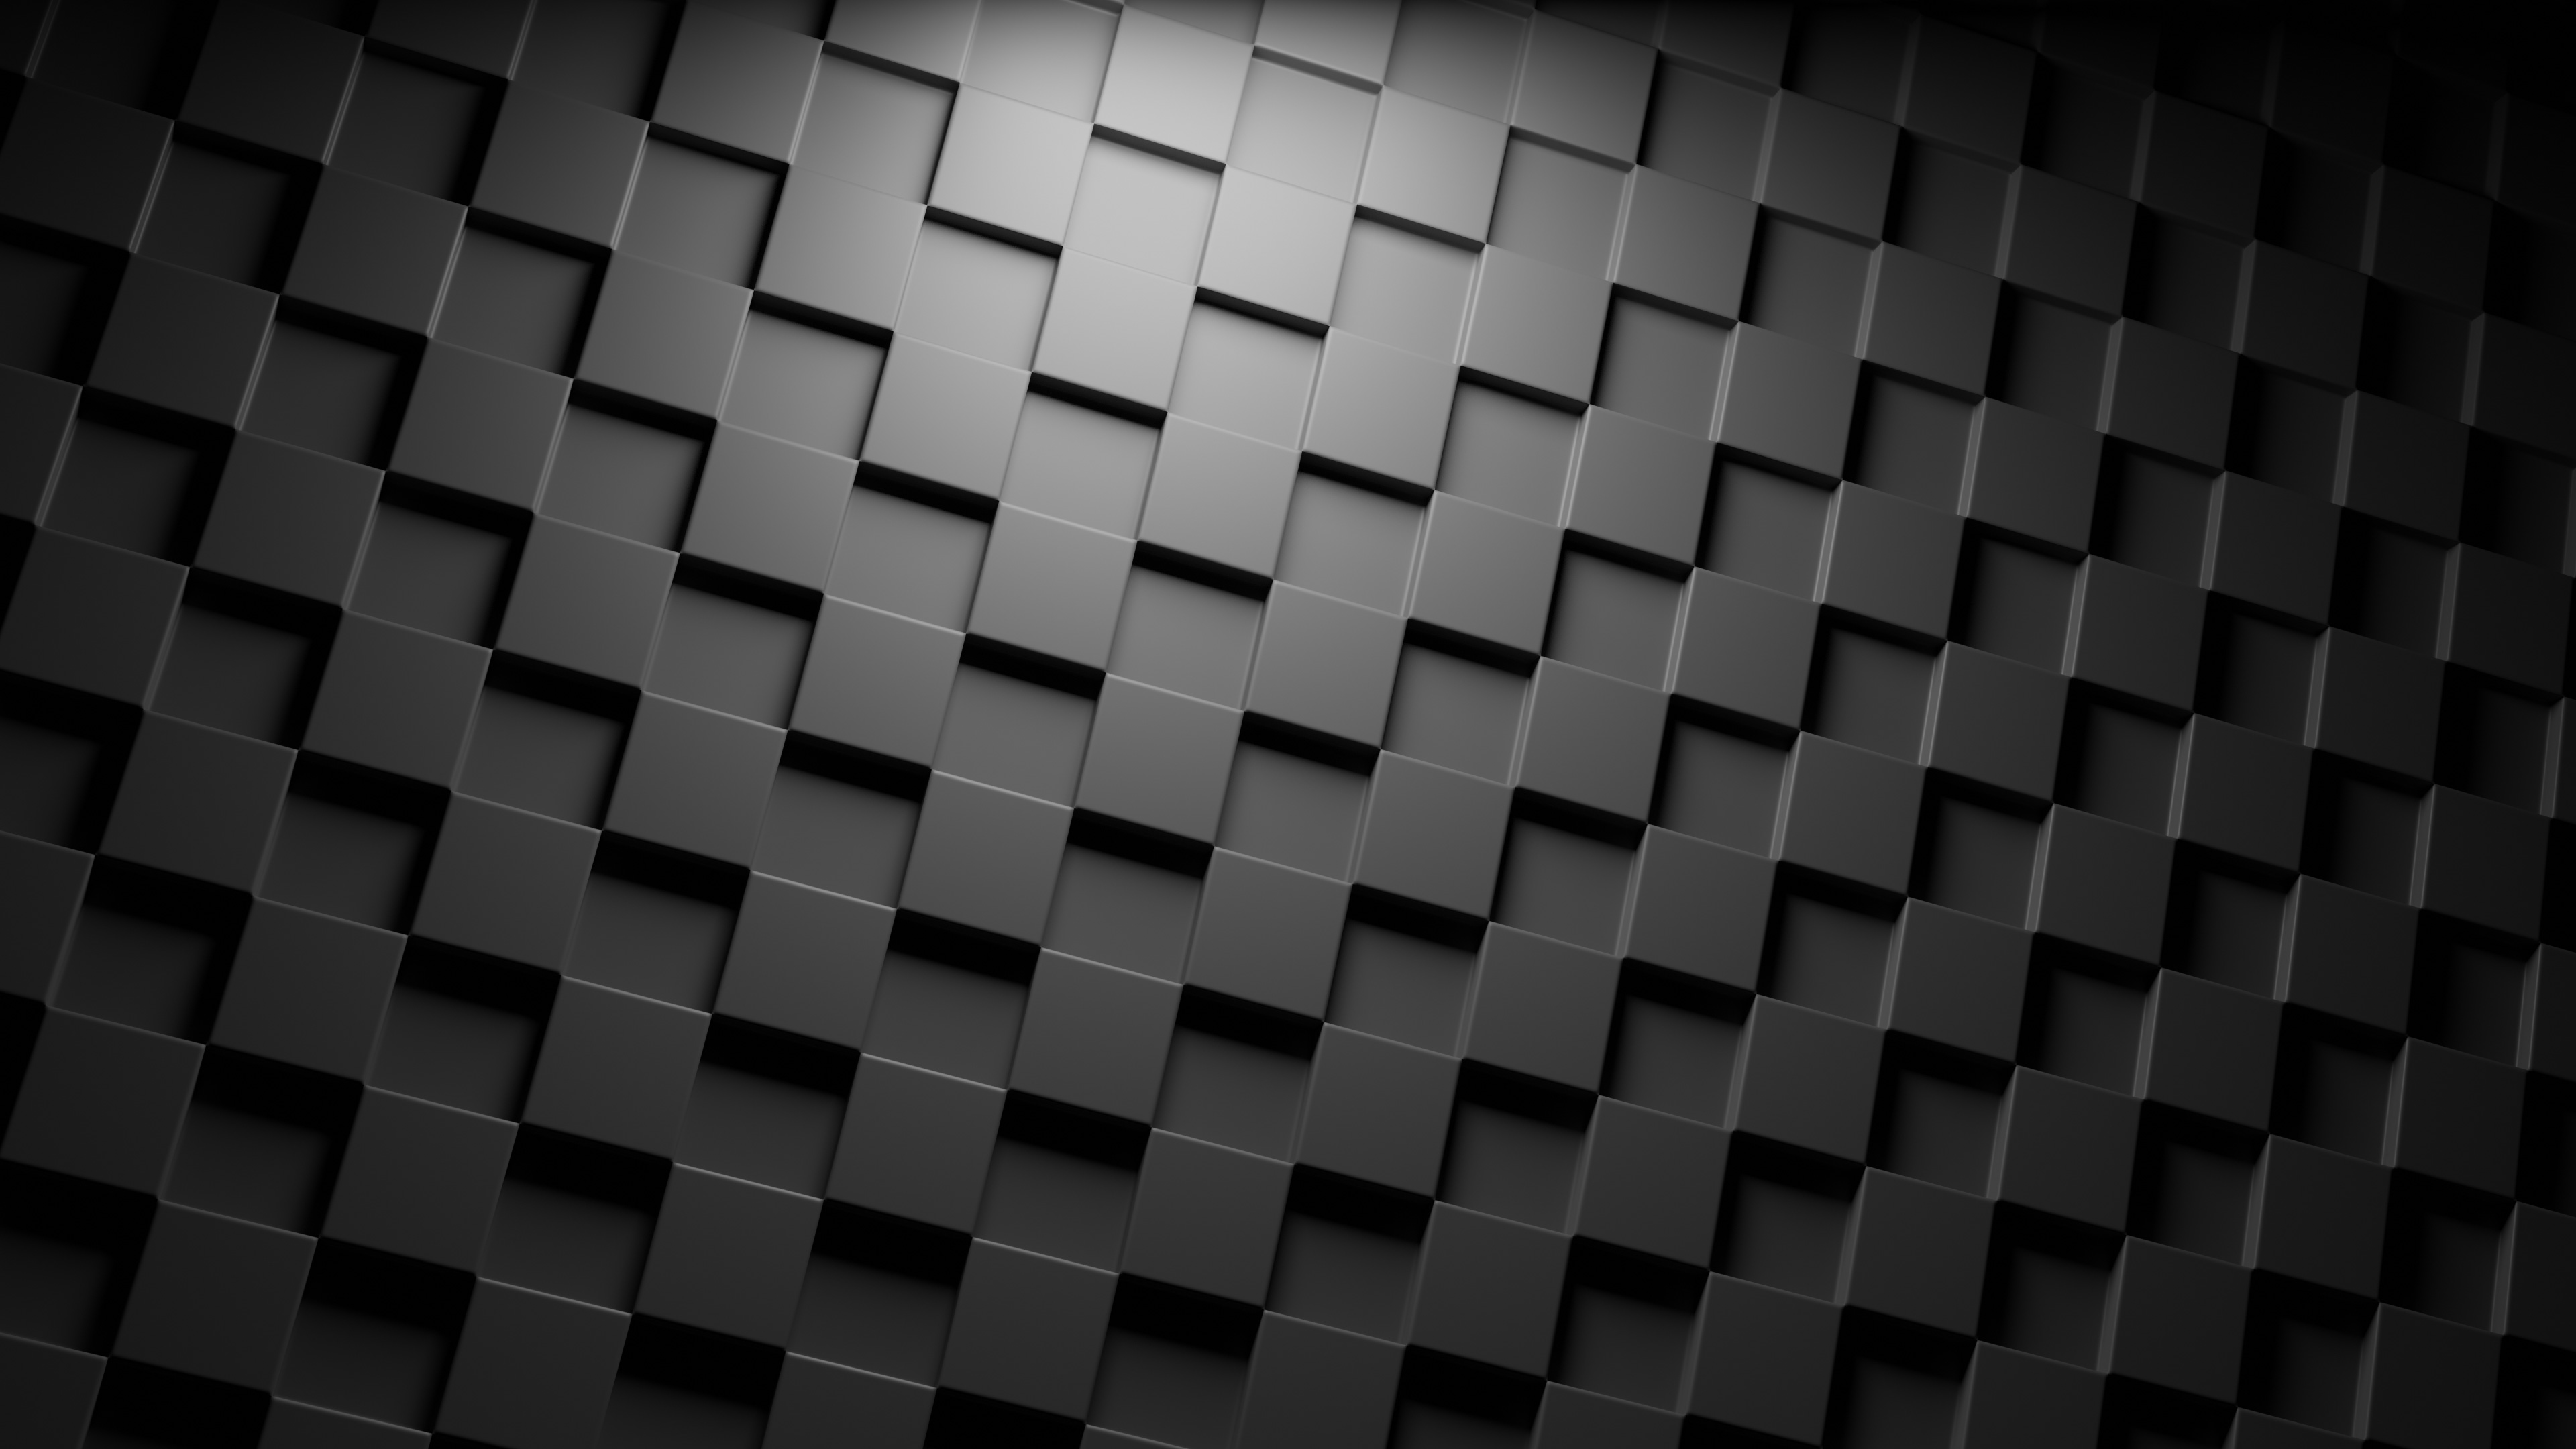 D Dark Cubes Wallpaper for Android Android Live Wallpaper